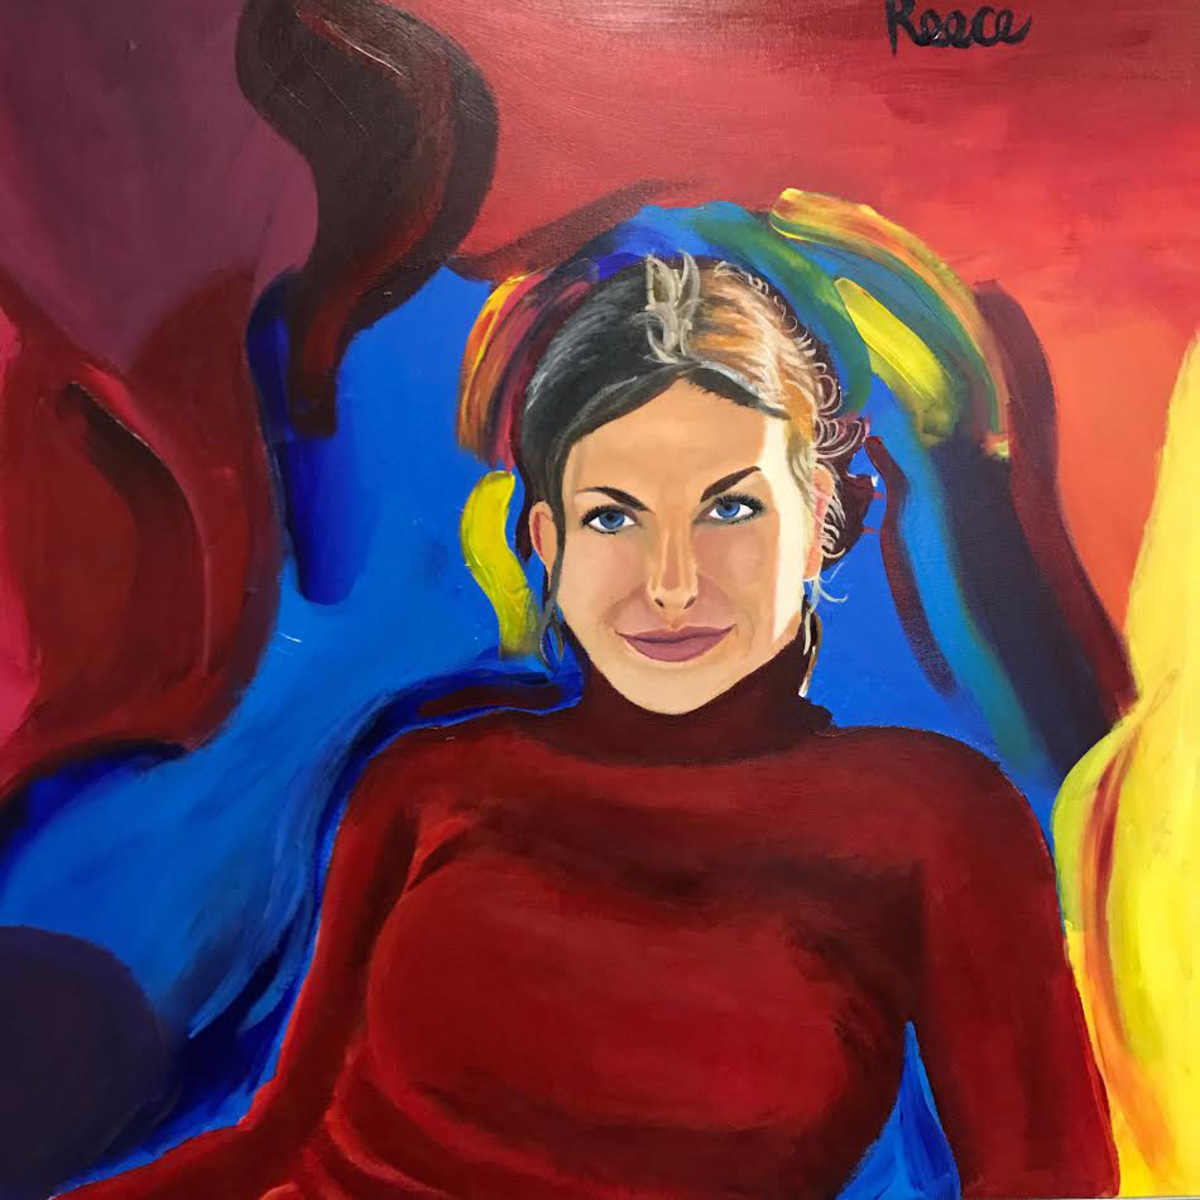 Senior+Reece+Replogle+began+painting+portraits+of+impactful+people+in+his+life%2C+English+teacher+Michelle+Iskra+being+one+of+them.+